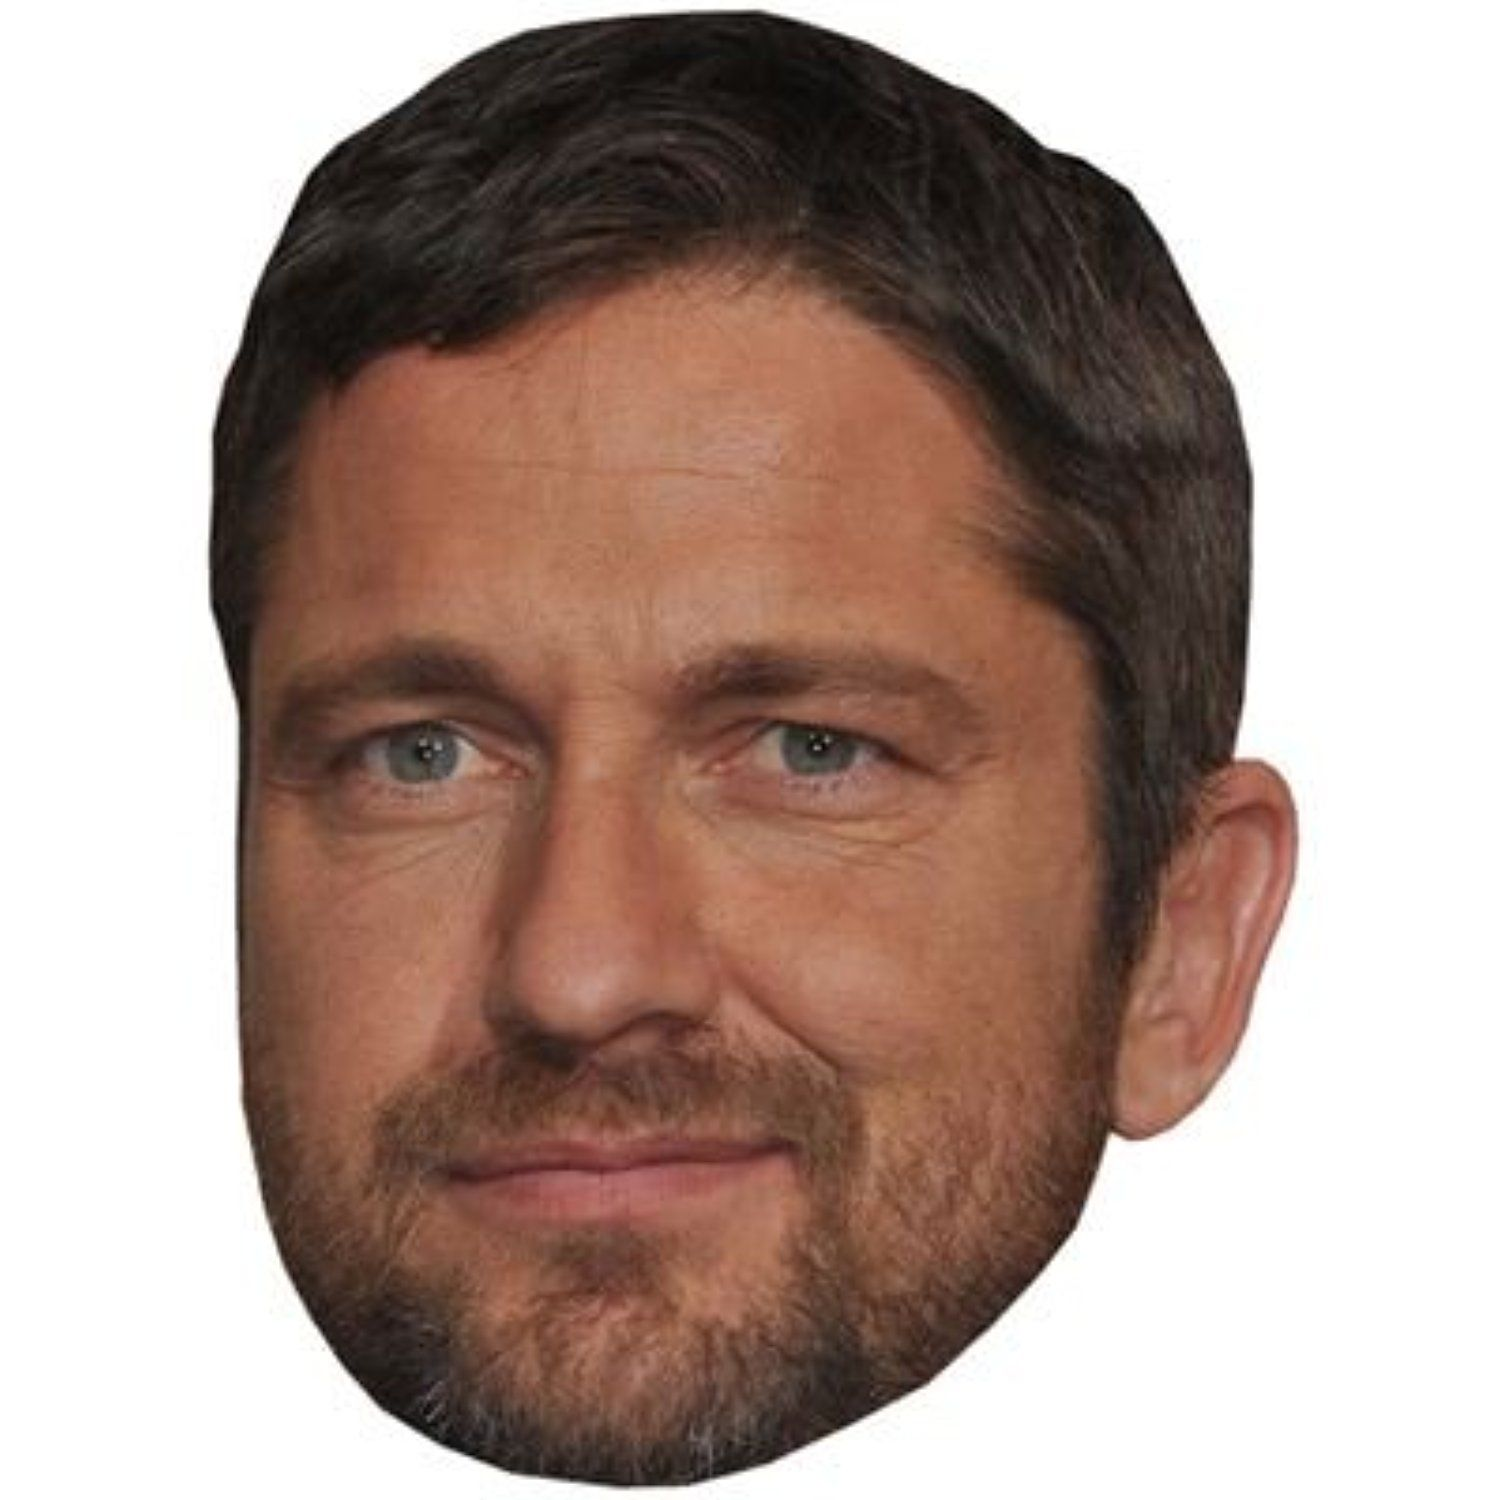 Amazon.com: celebrity cardboard masks